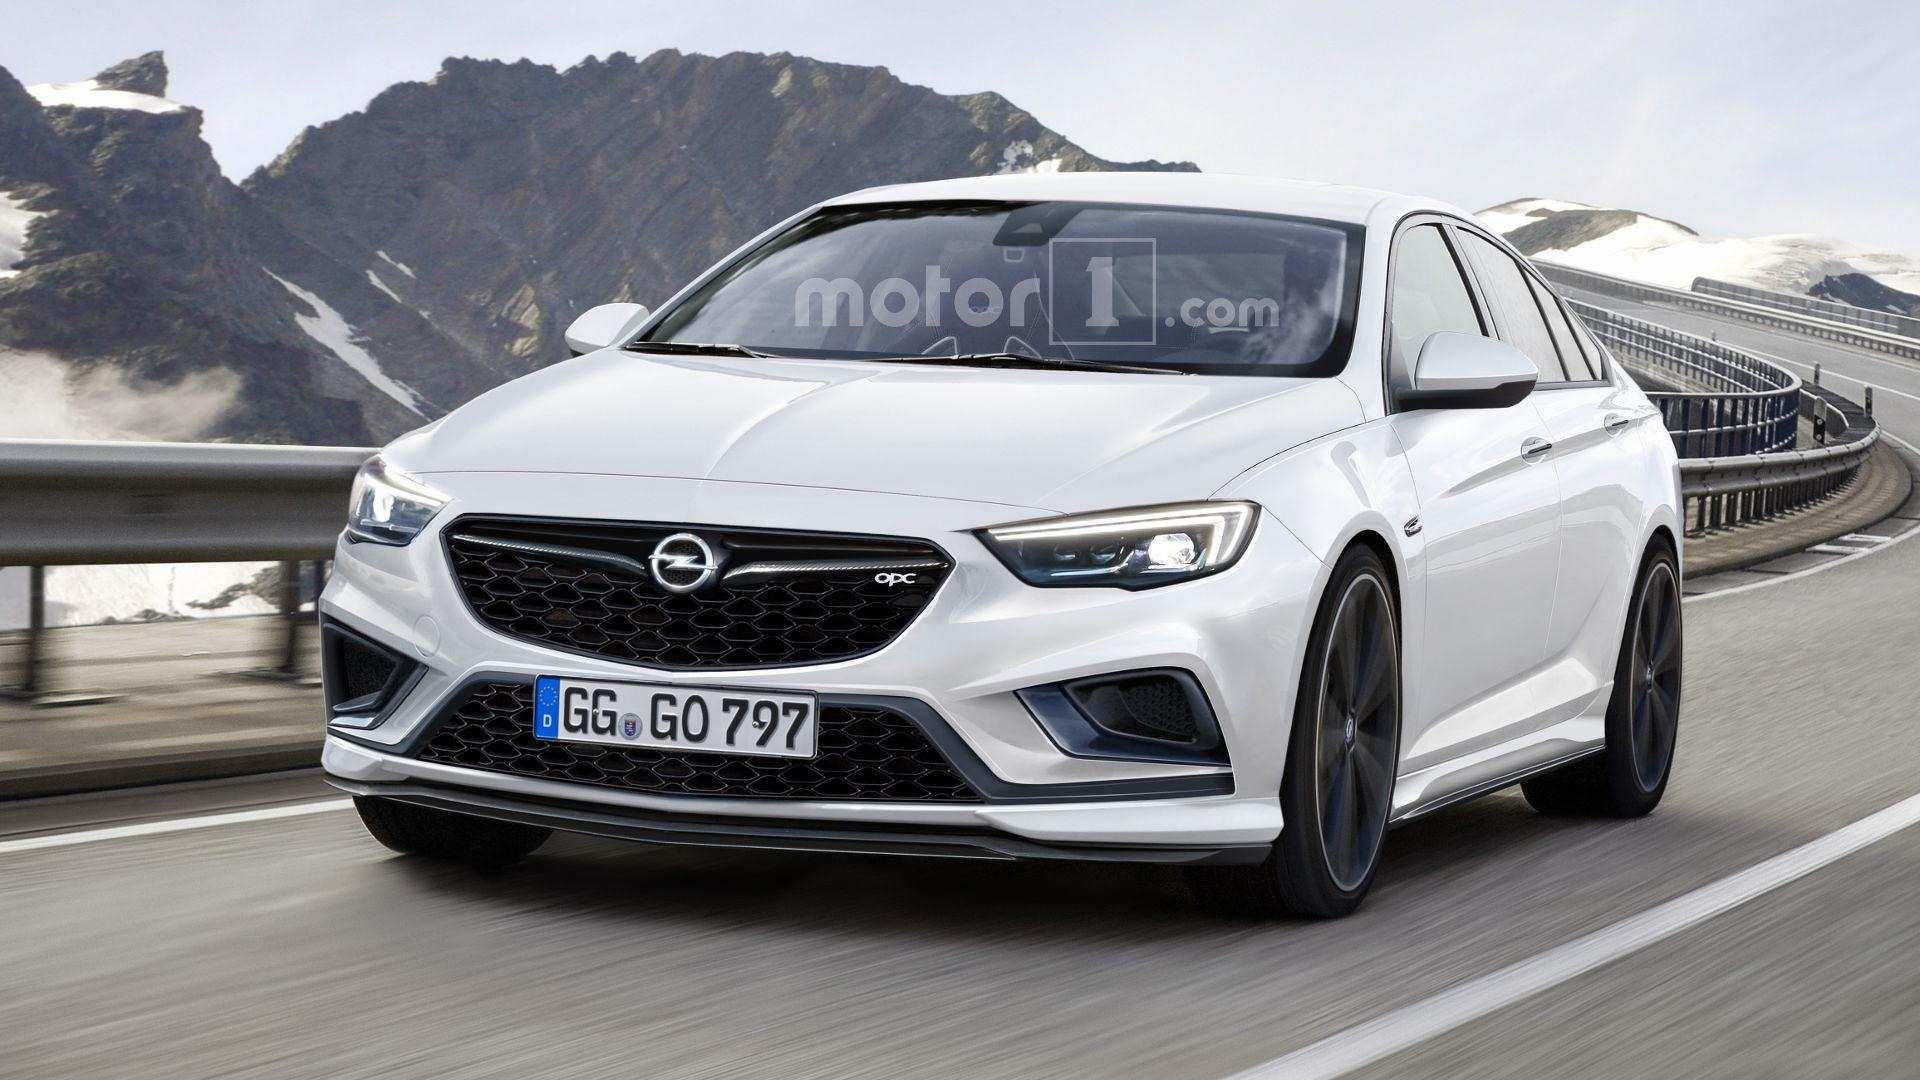 95 Best Review New Opel Insignia 2020 Prices by New Opel Insignia 2020